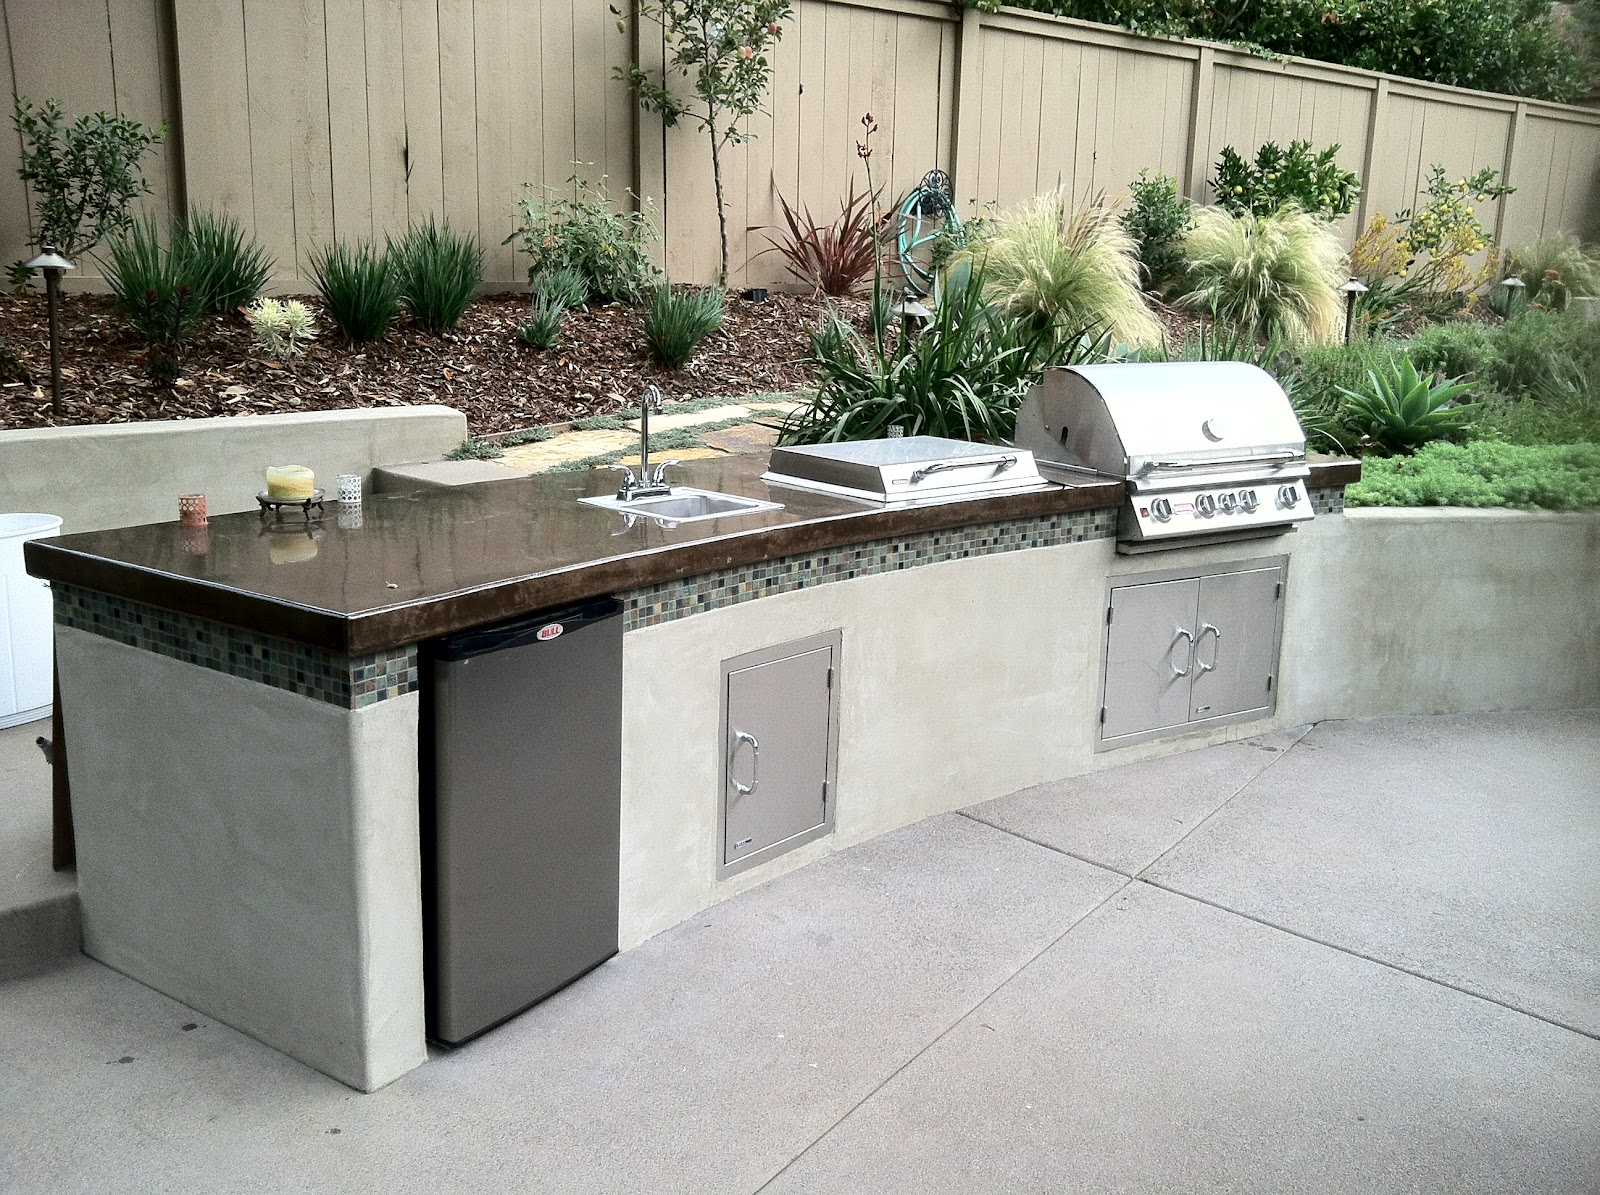 Outdoor Kitchen With Concrete Countertops  Concrete Countertops Custom Outdoor Kitchen Charcoal Grill Design Decoration